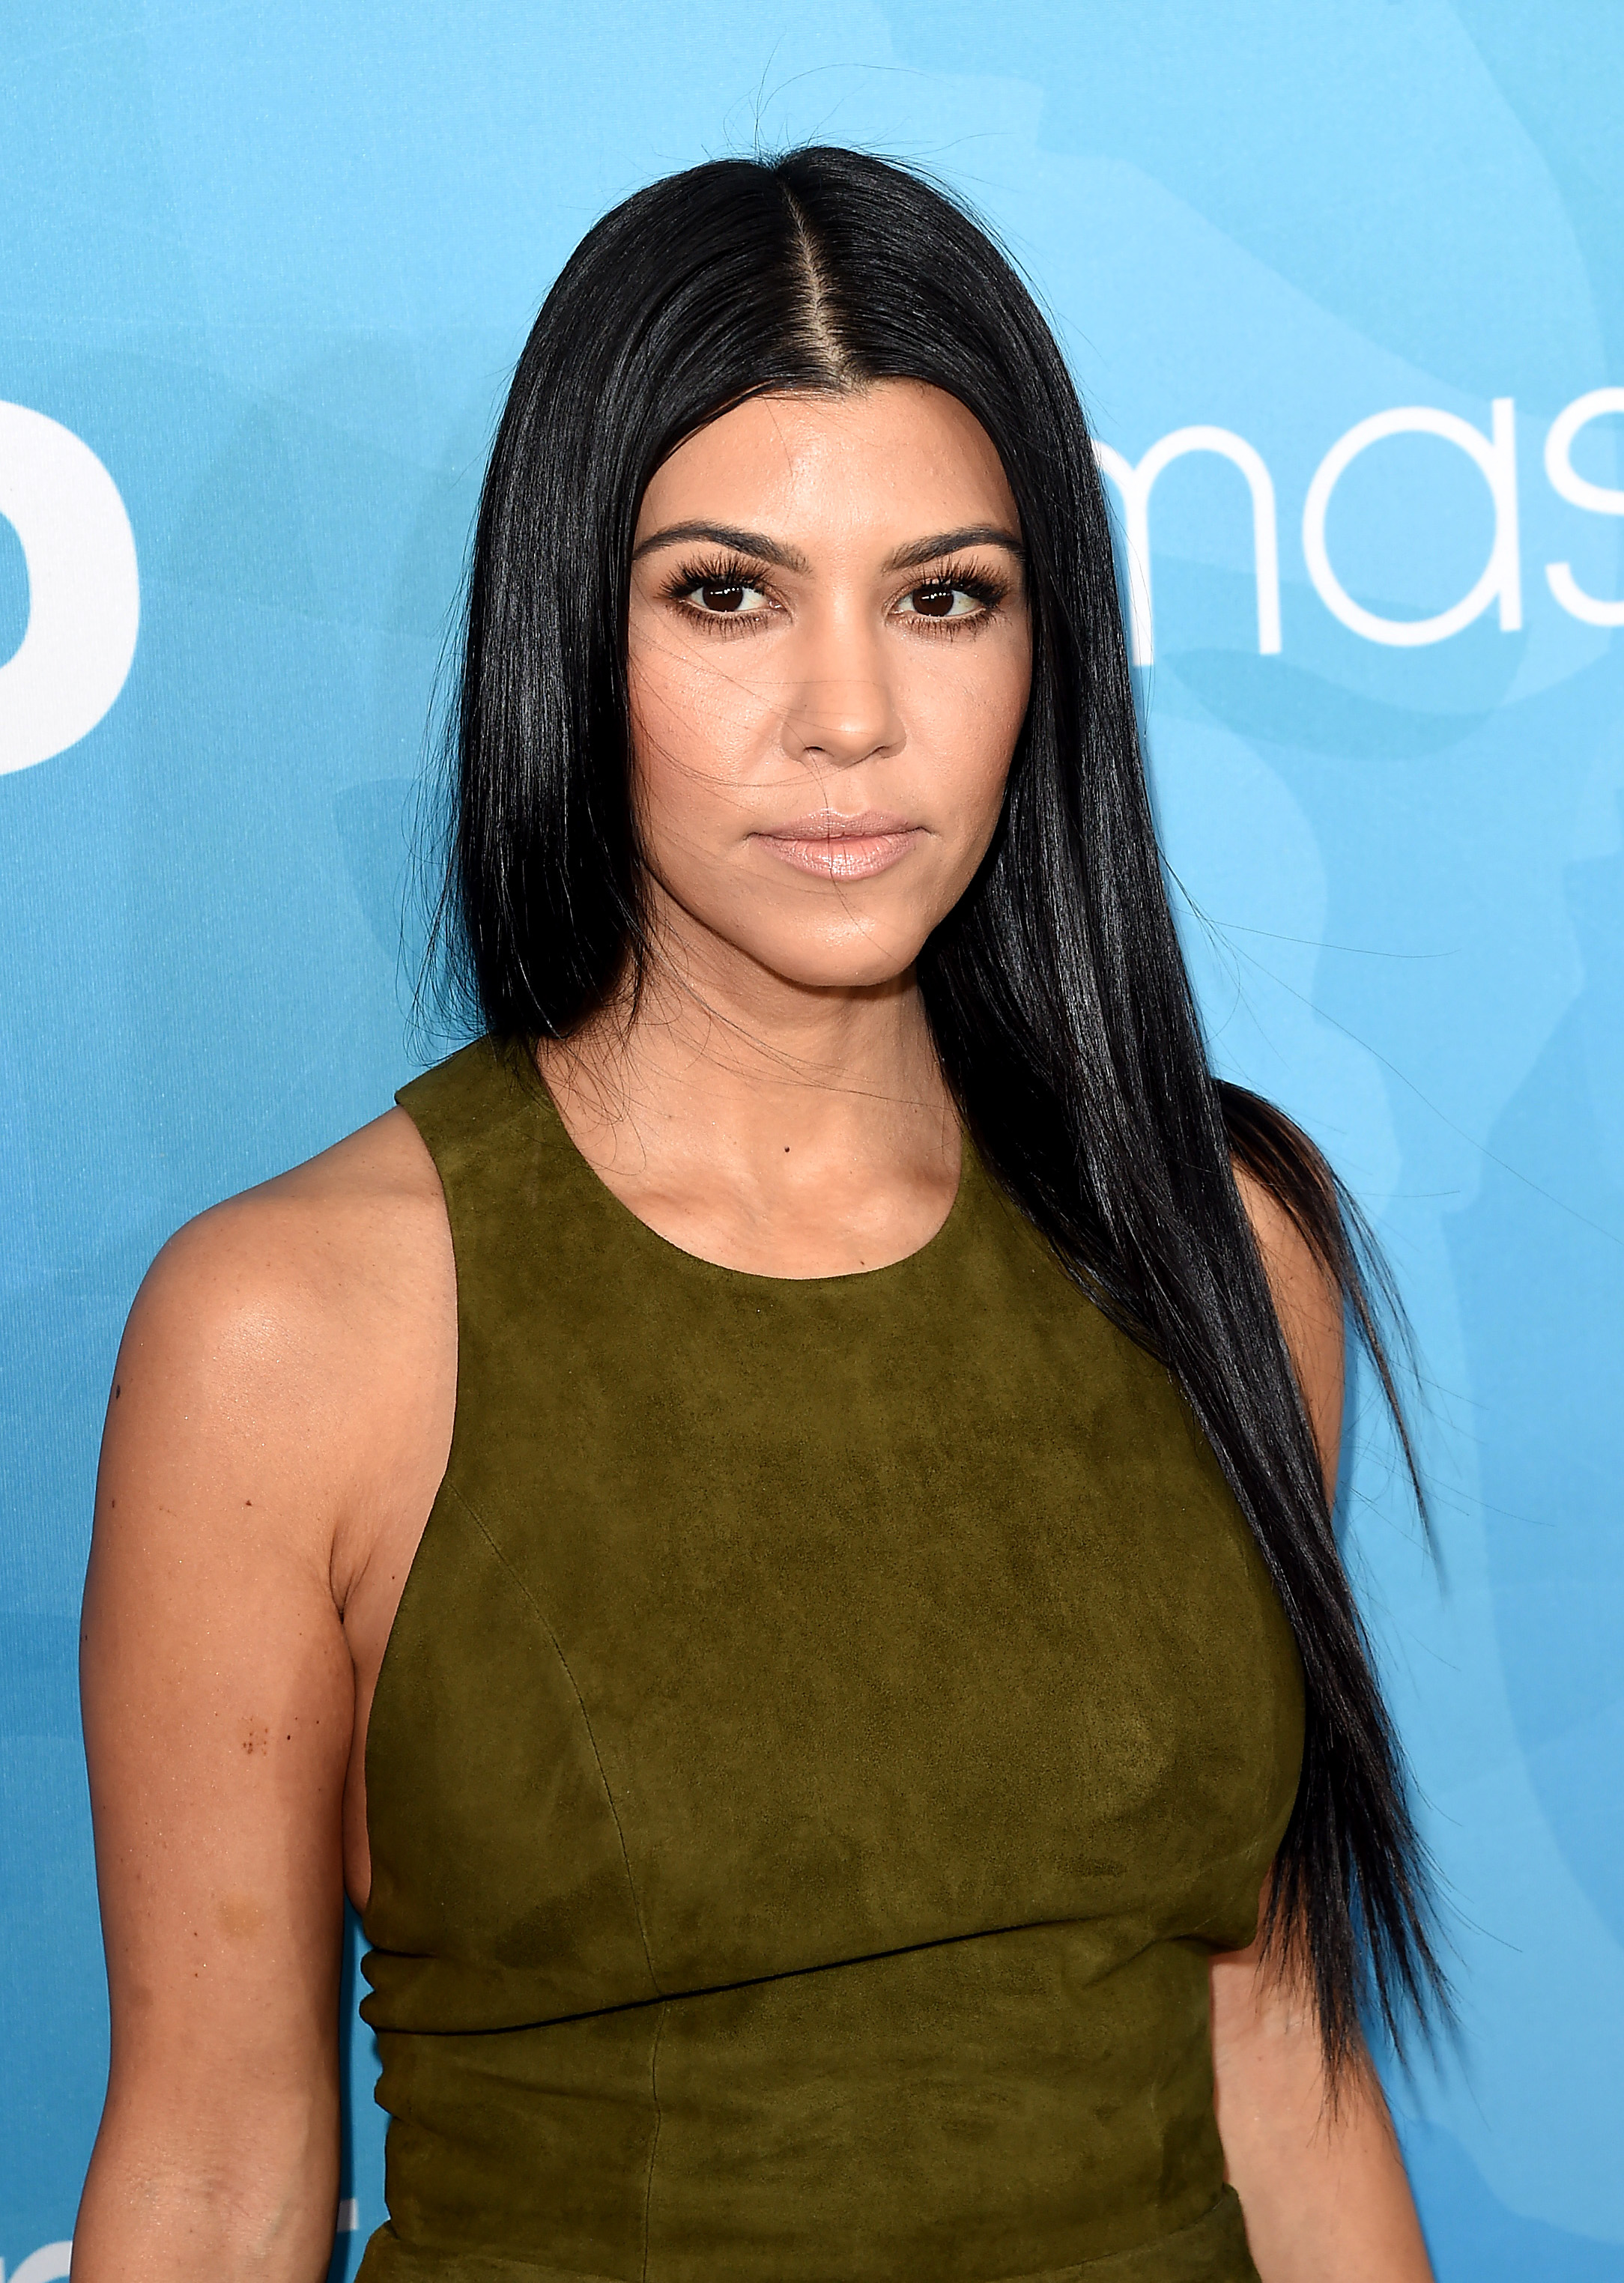 7 Kourtney Kardashian App Features That Make It Worth Investing In